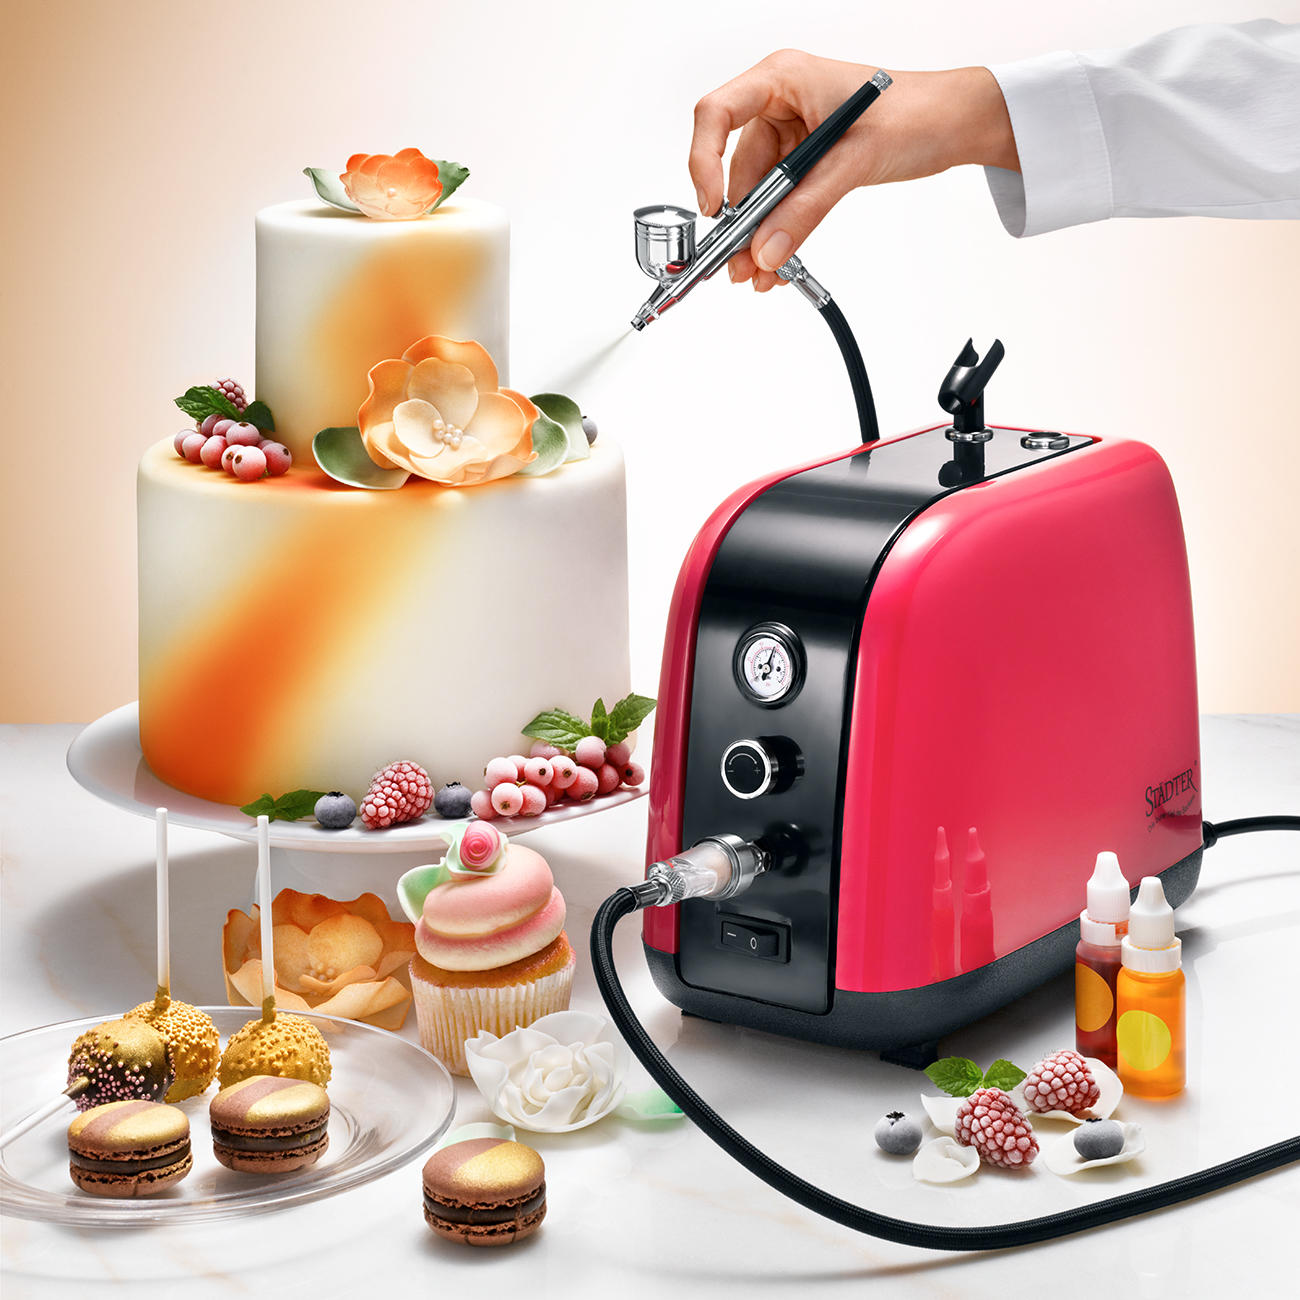 Cake Design Pro : Buy Airbrush Compressor Kit, 7-piece set online